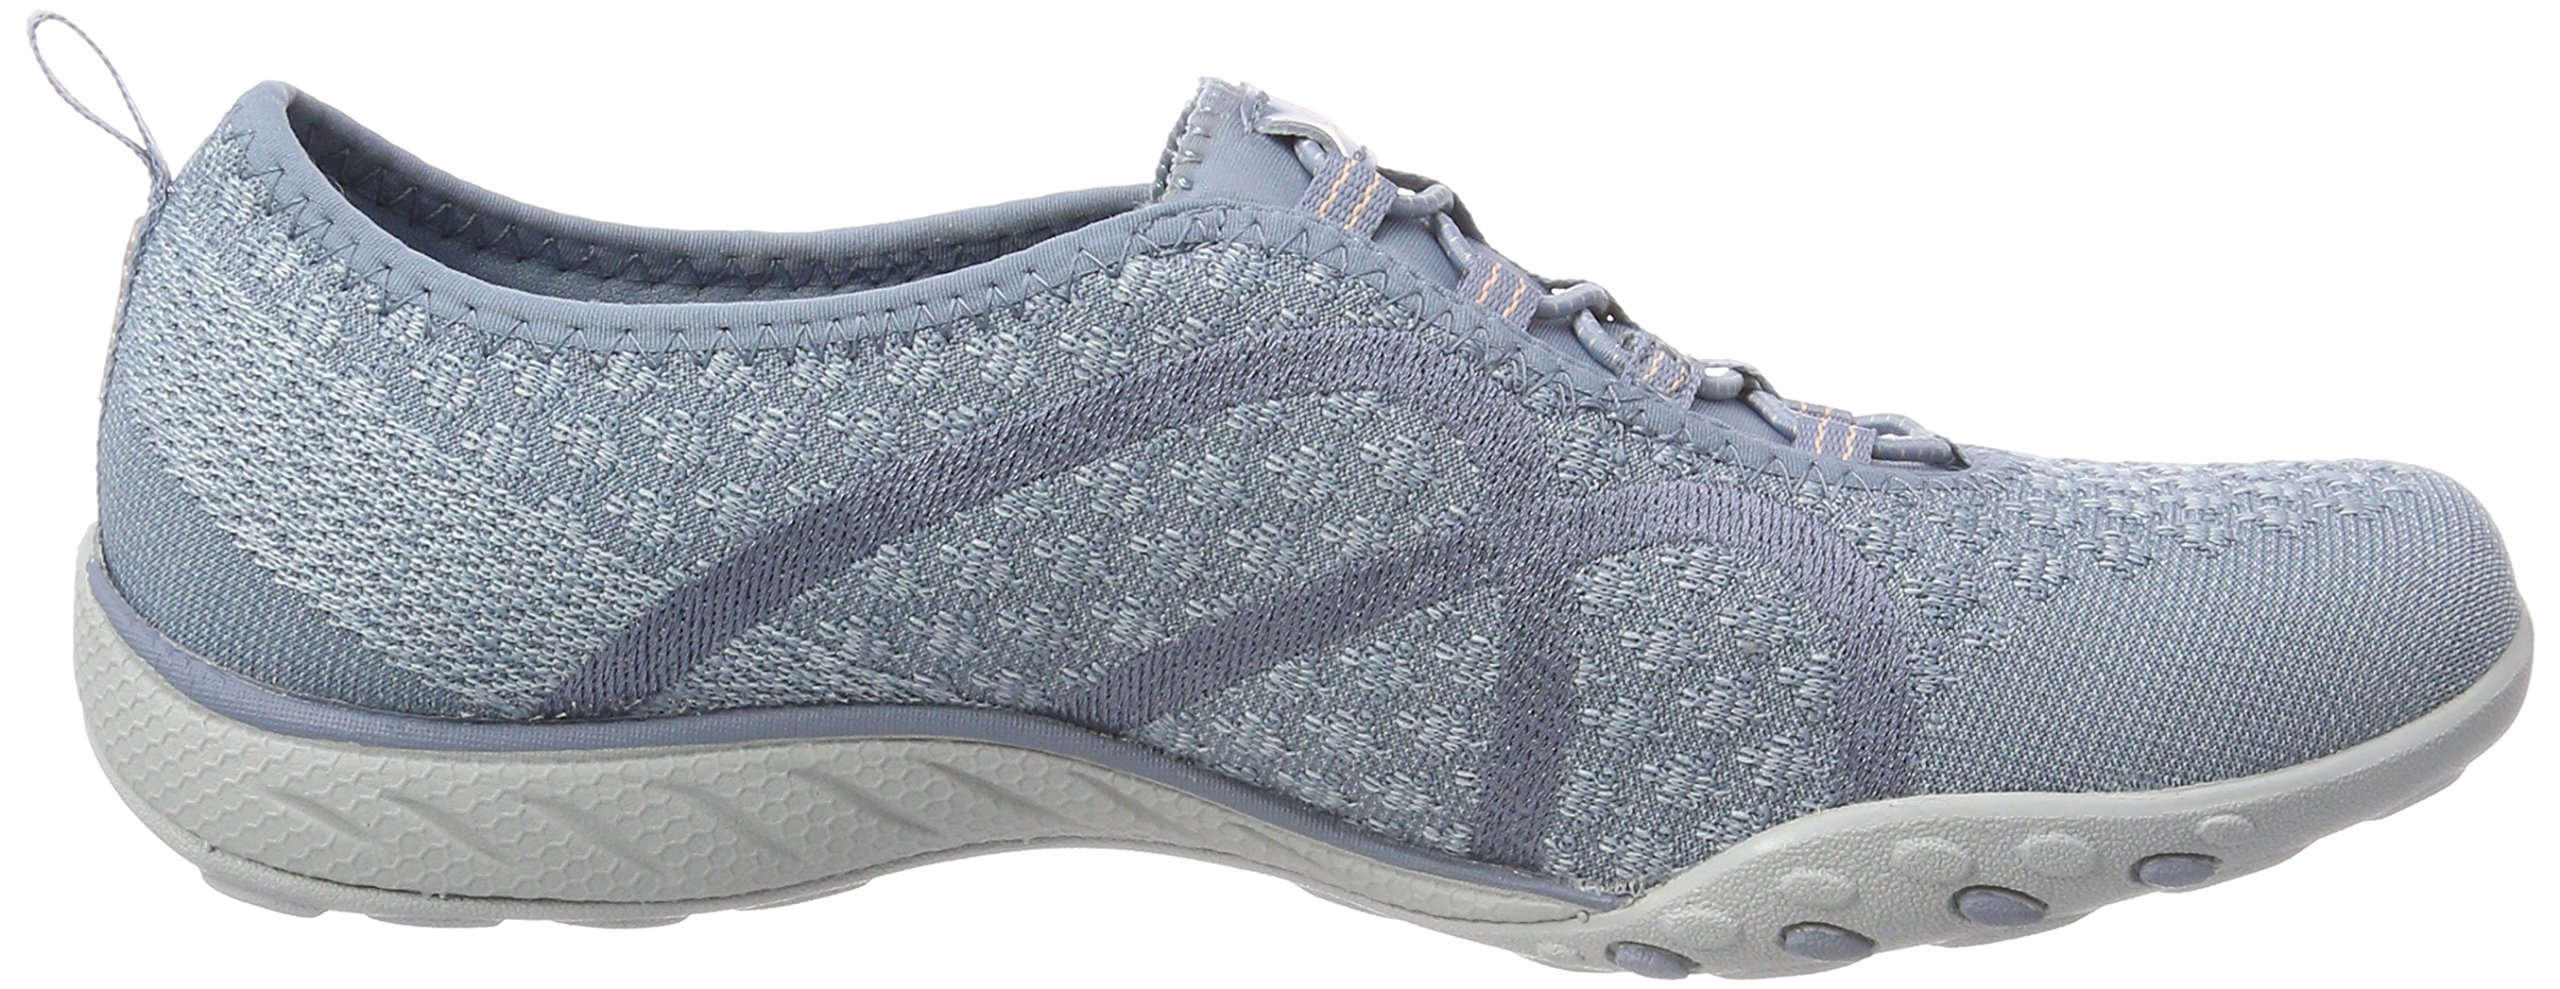 Skechers Relaxed Fit Breathe Easy Fortune Knit Womens Bungee Sneakers Blue 8 by Skechers (Image #6)